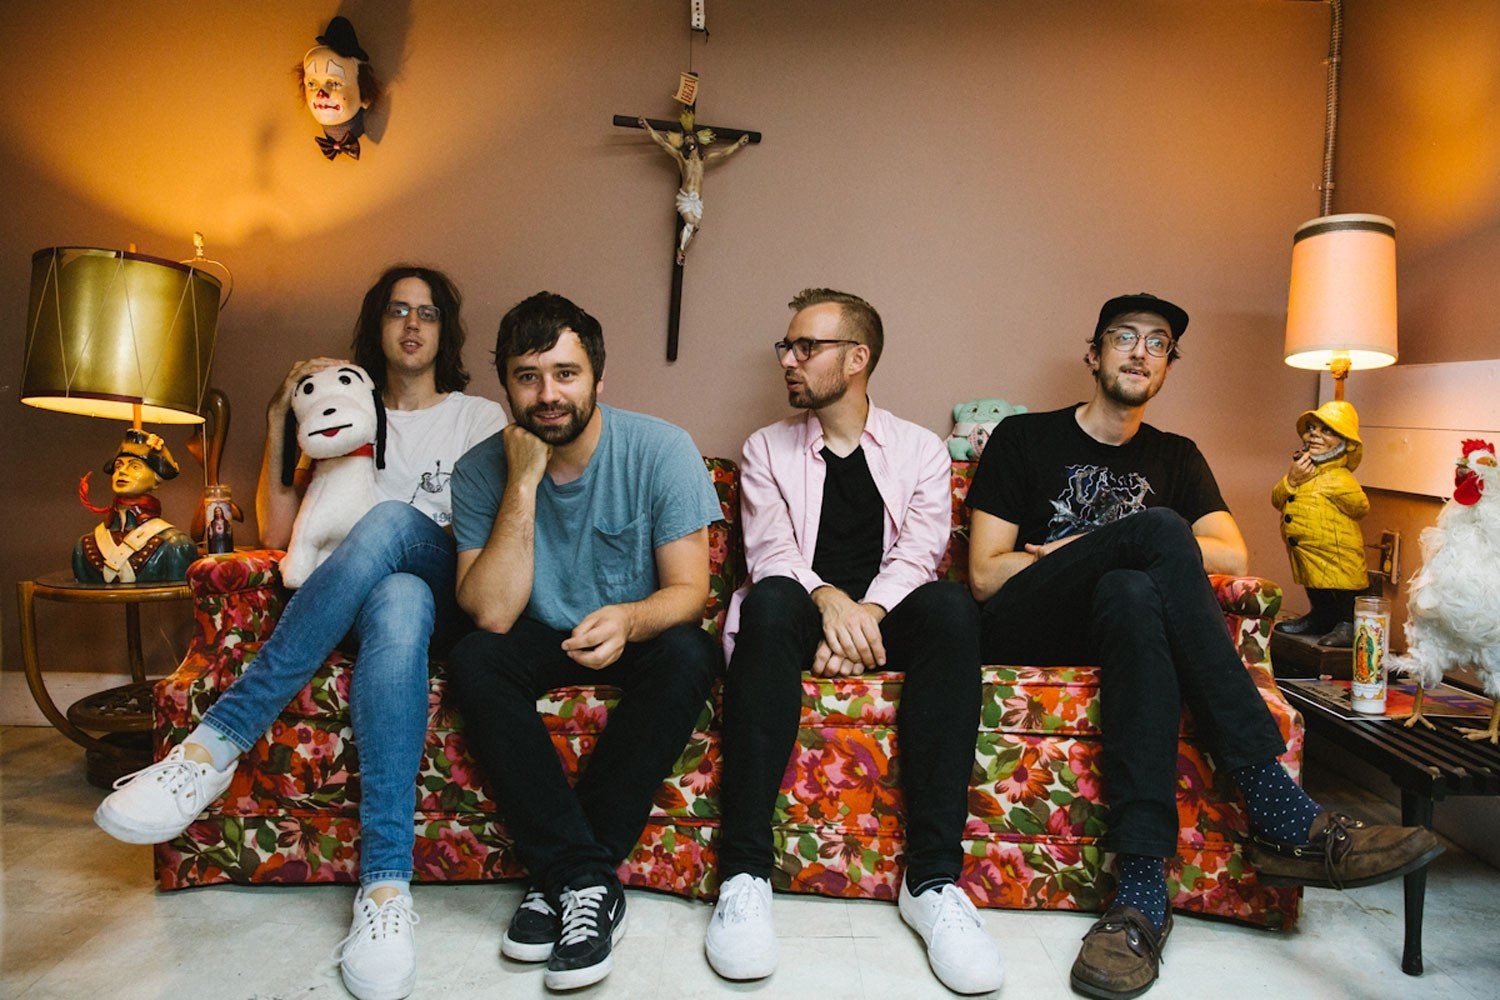 Cloud Nothings have shared another cut from their upcoming album, check out 'So Right So Clean'